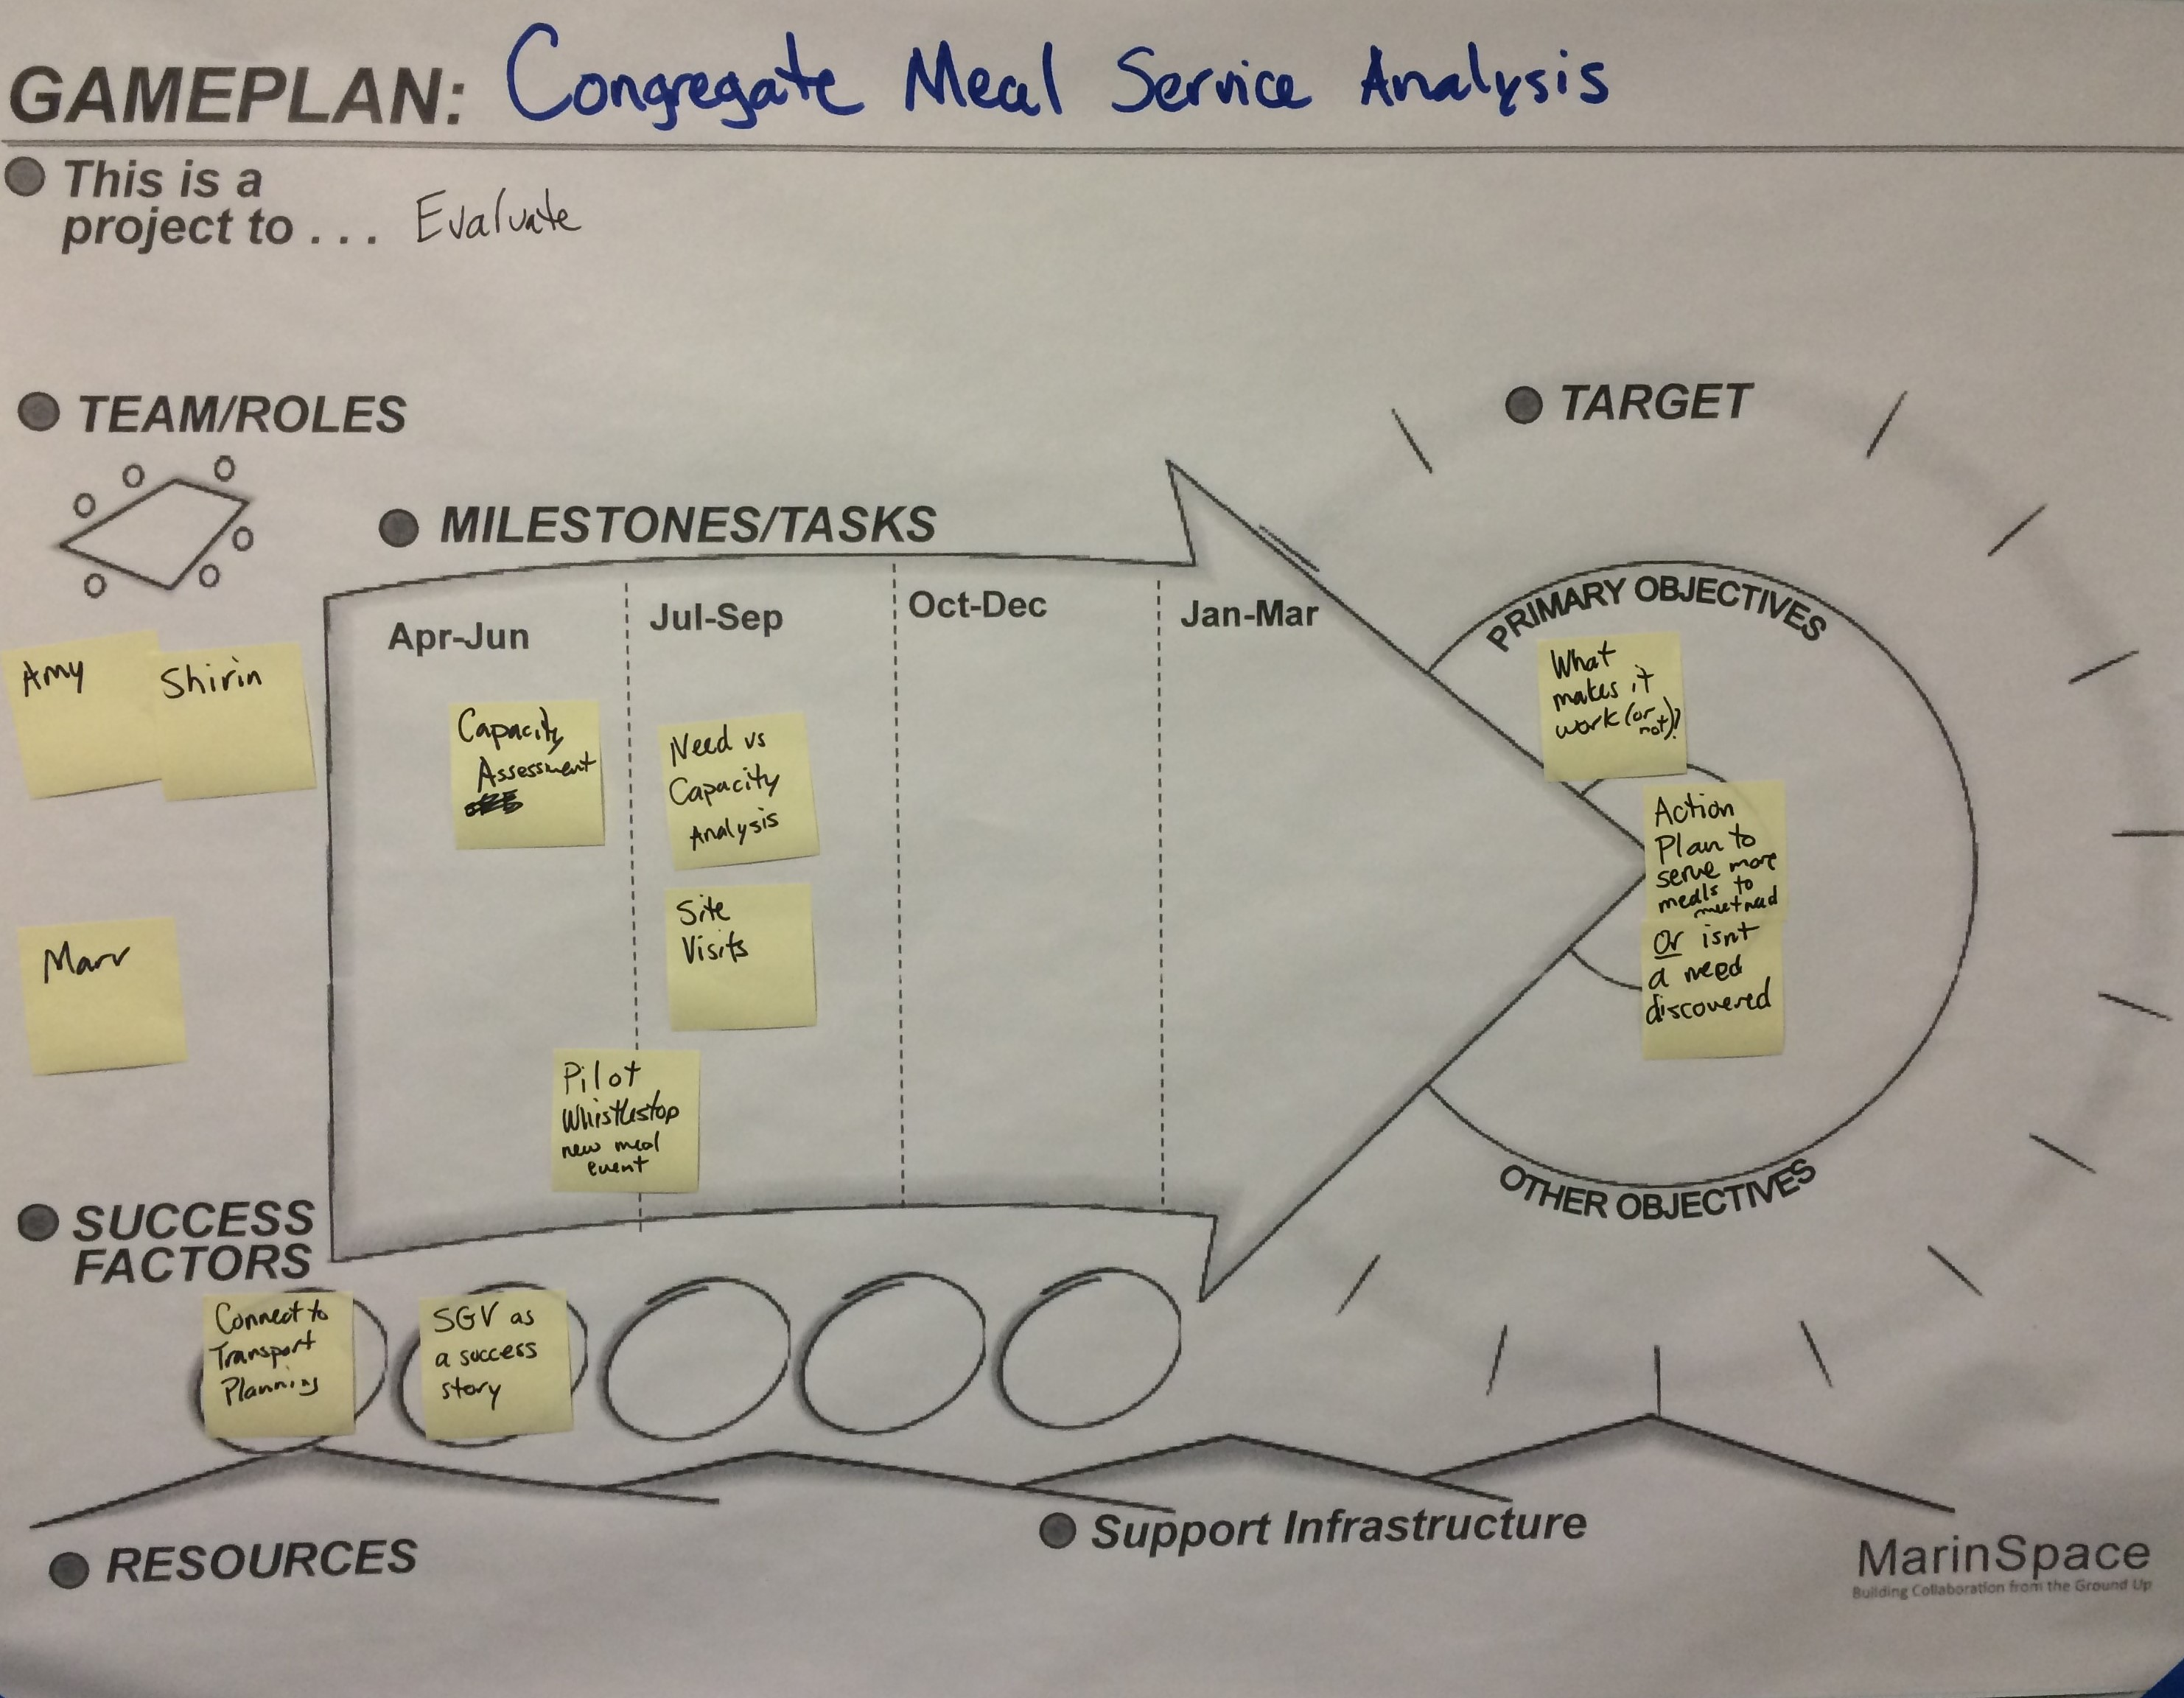 Congregate Meal Service Analysis Game Plan Graphic